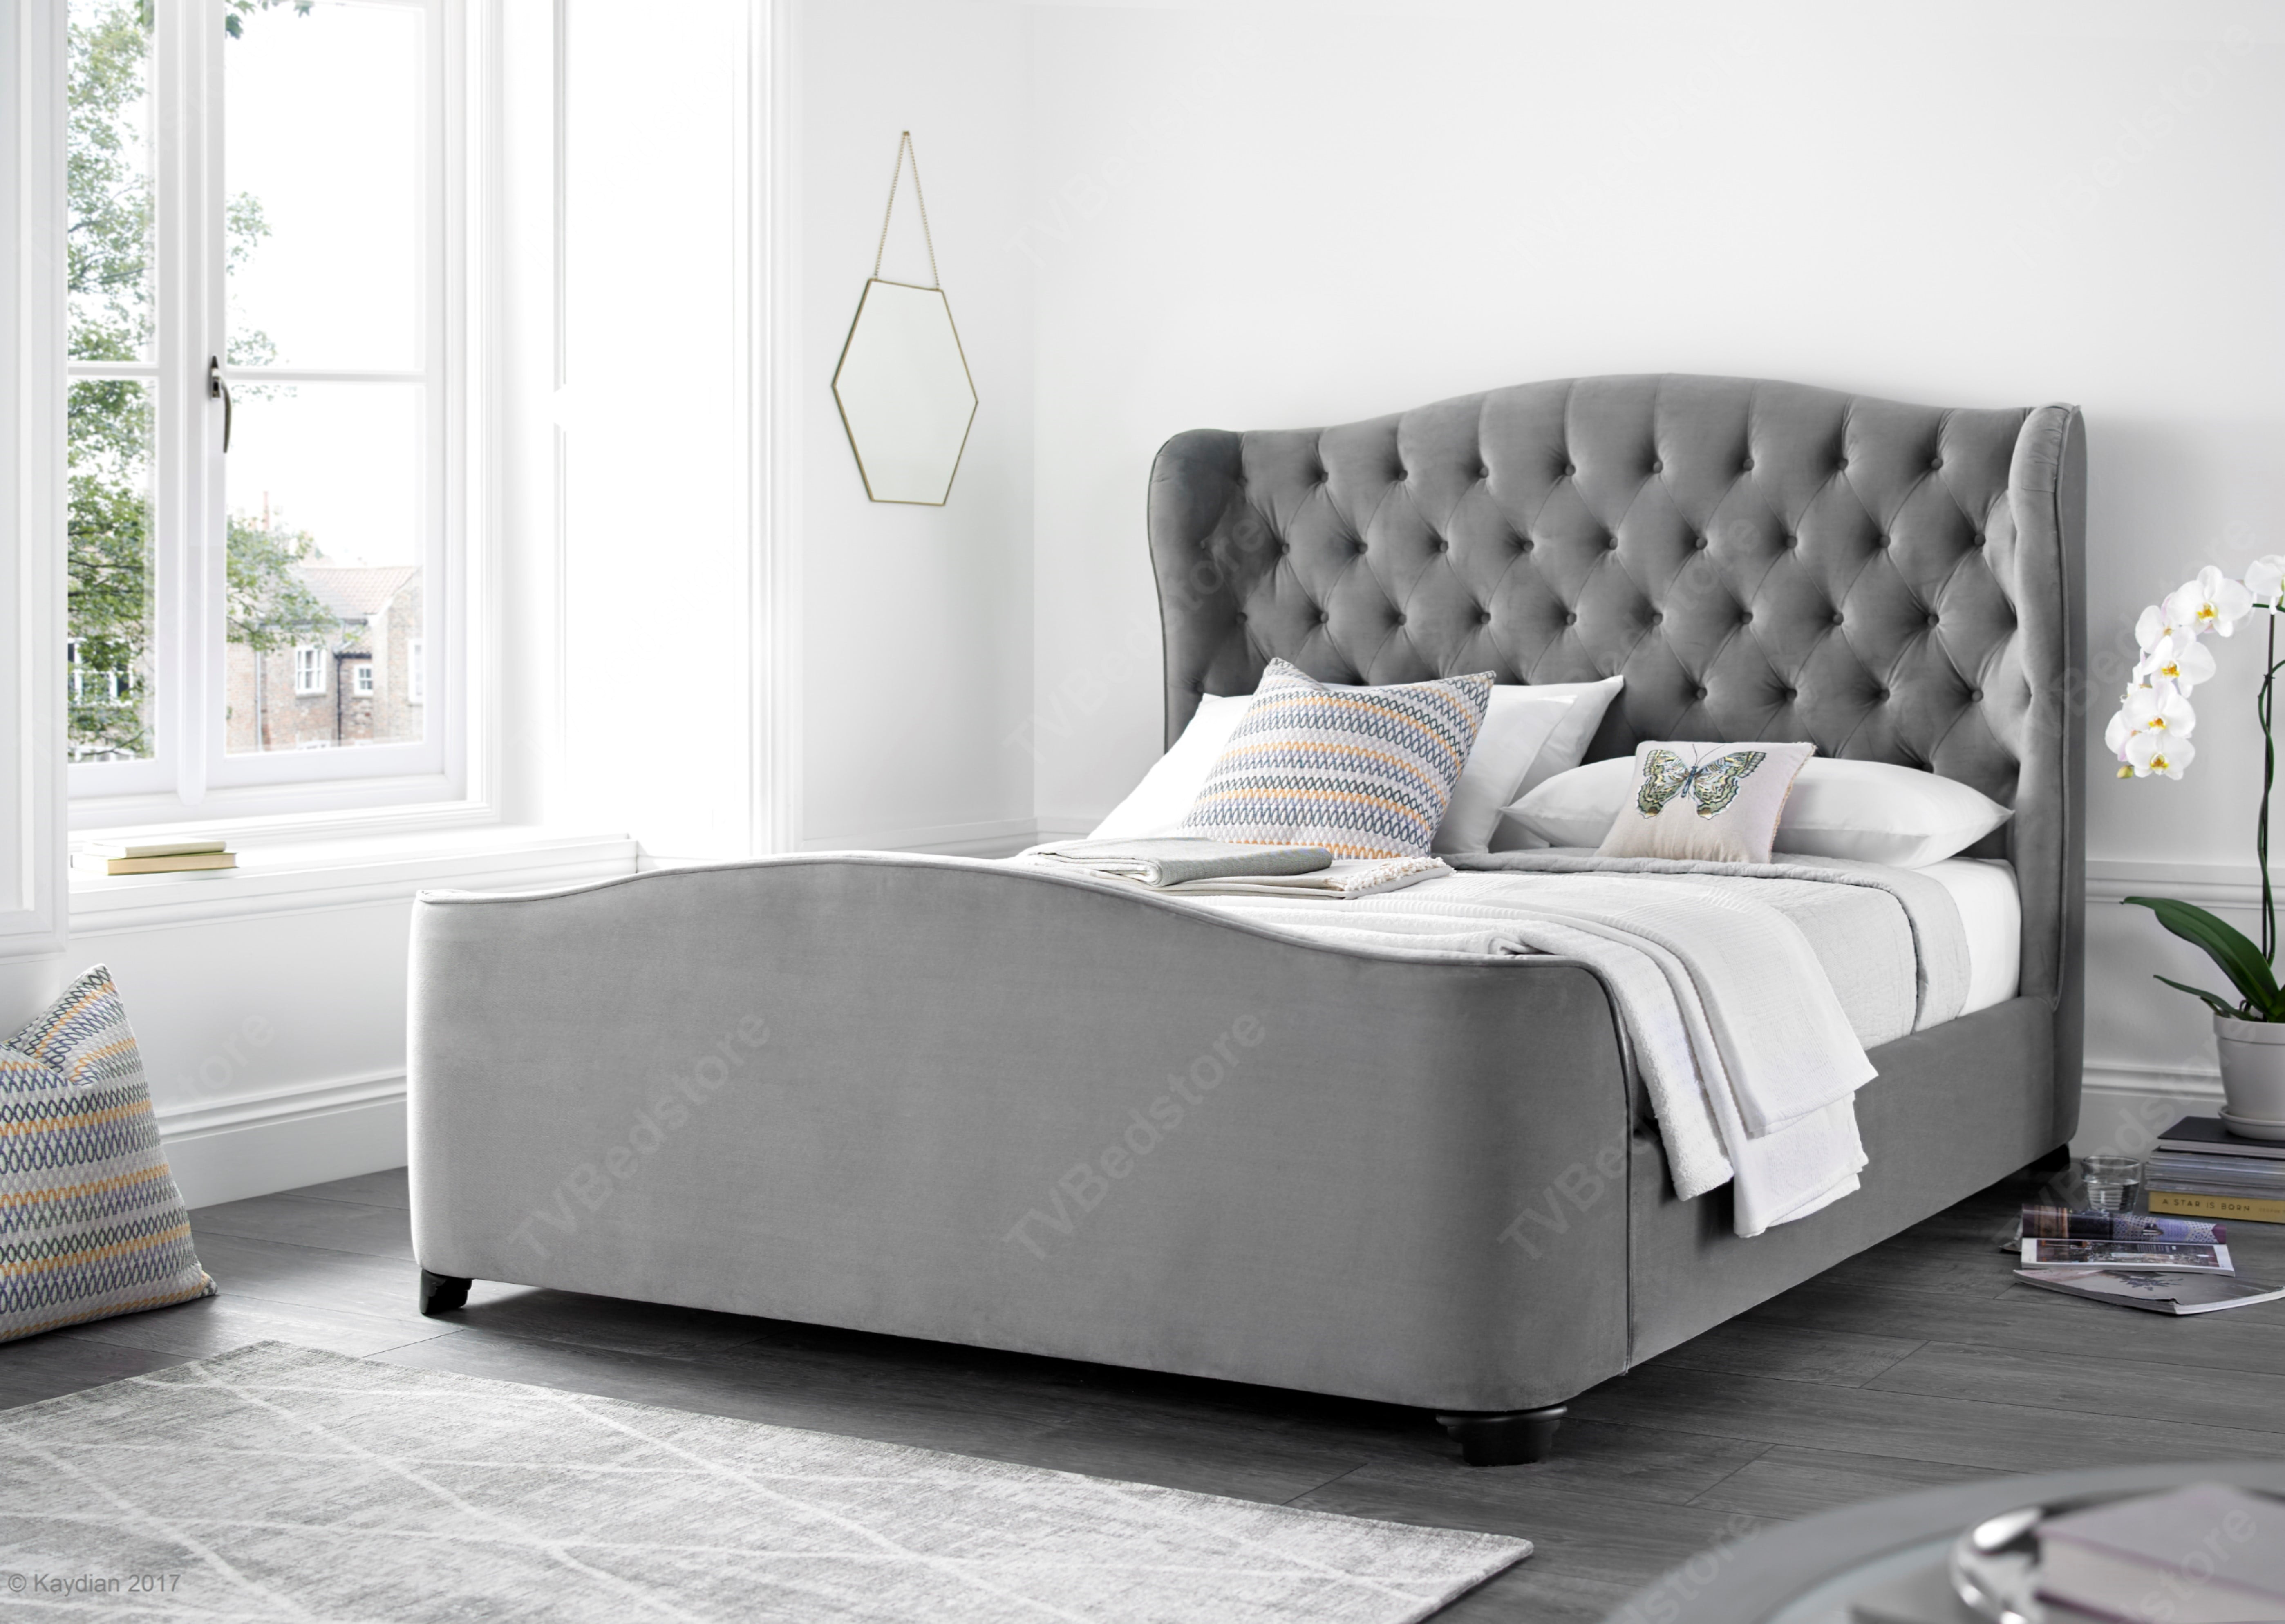 Ordinaire TV Bed Store